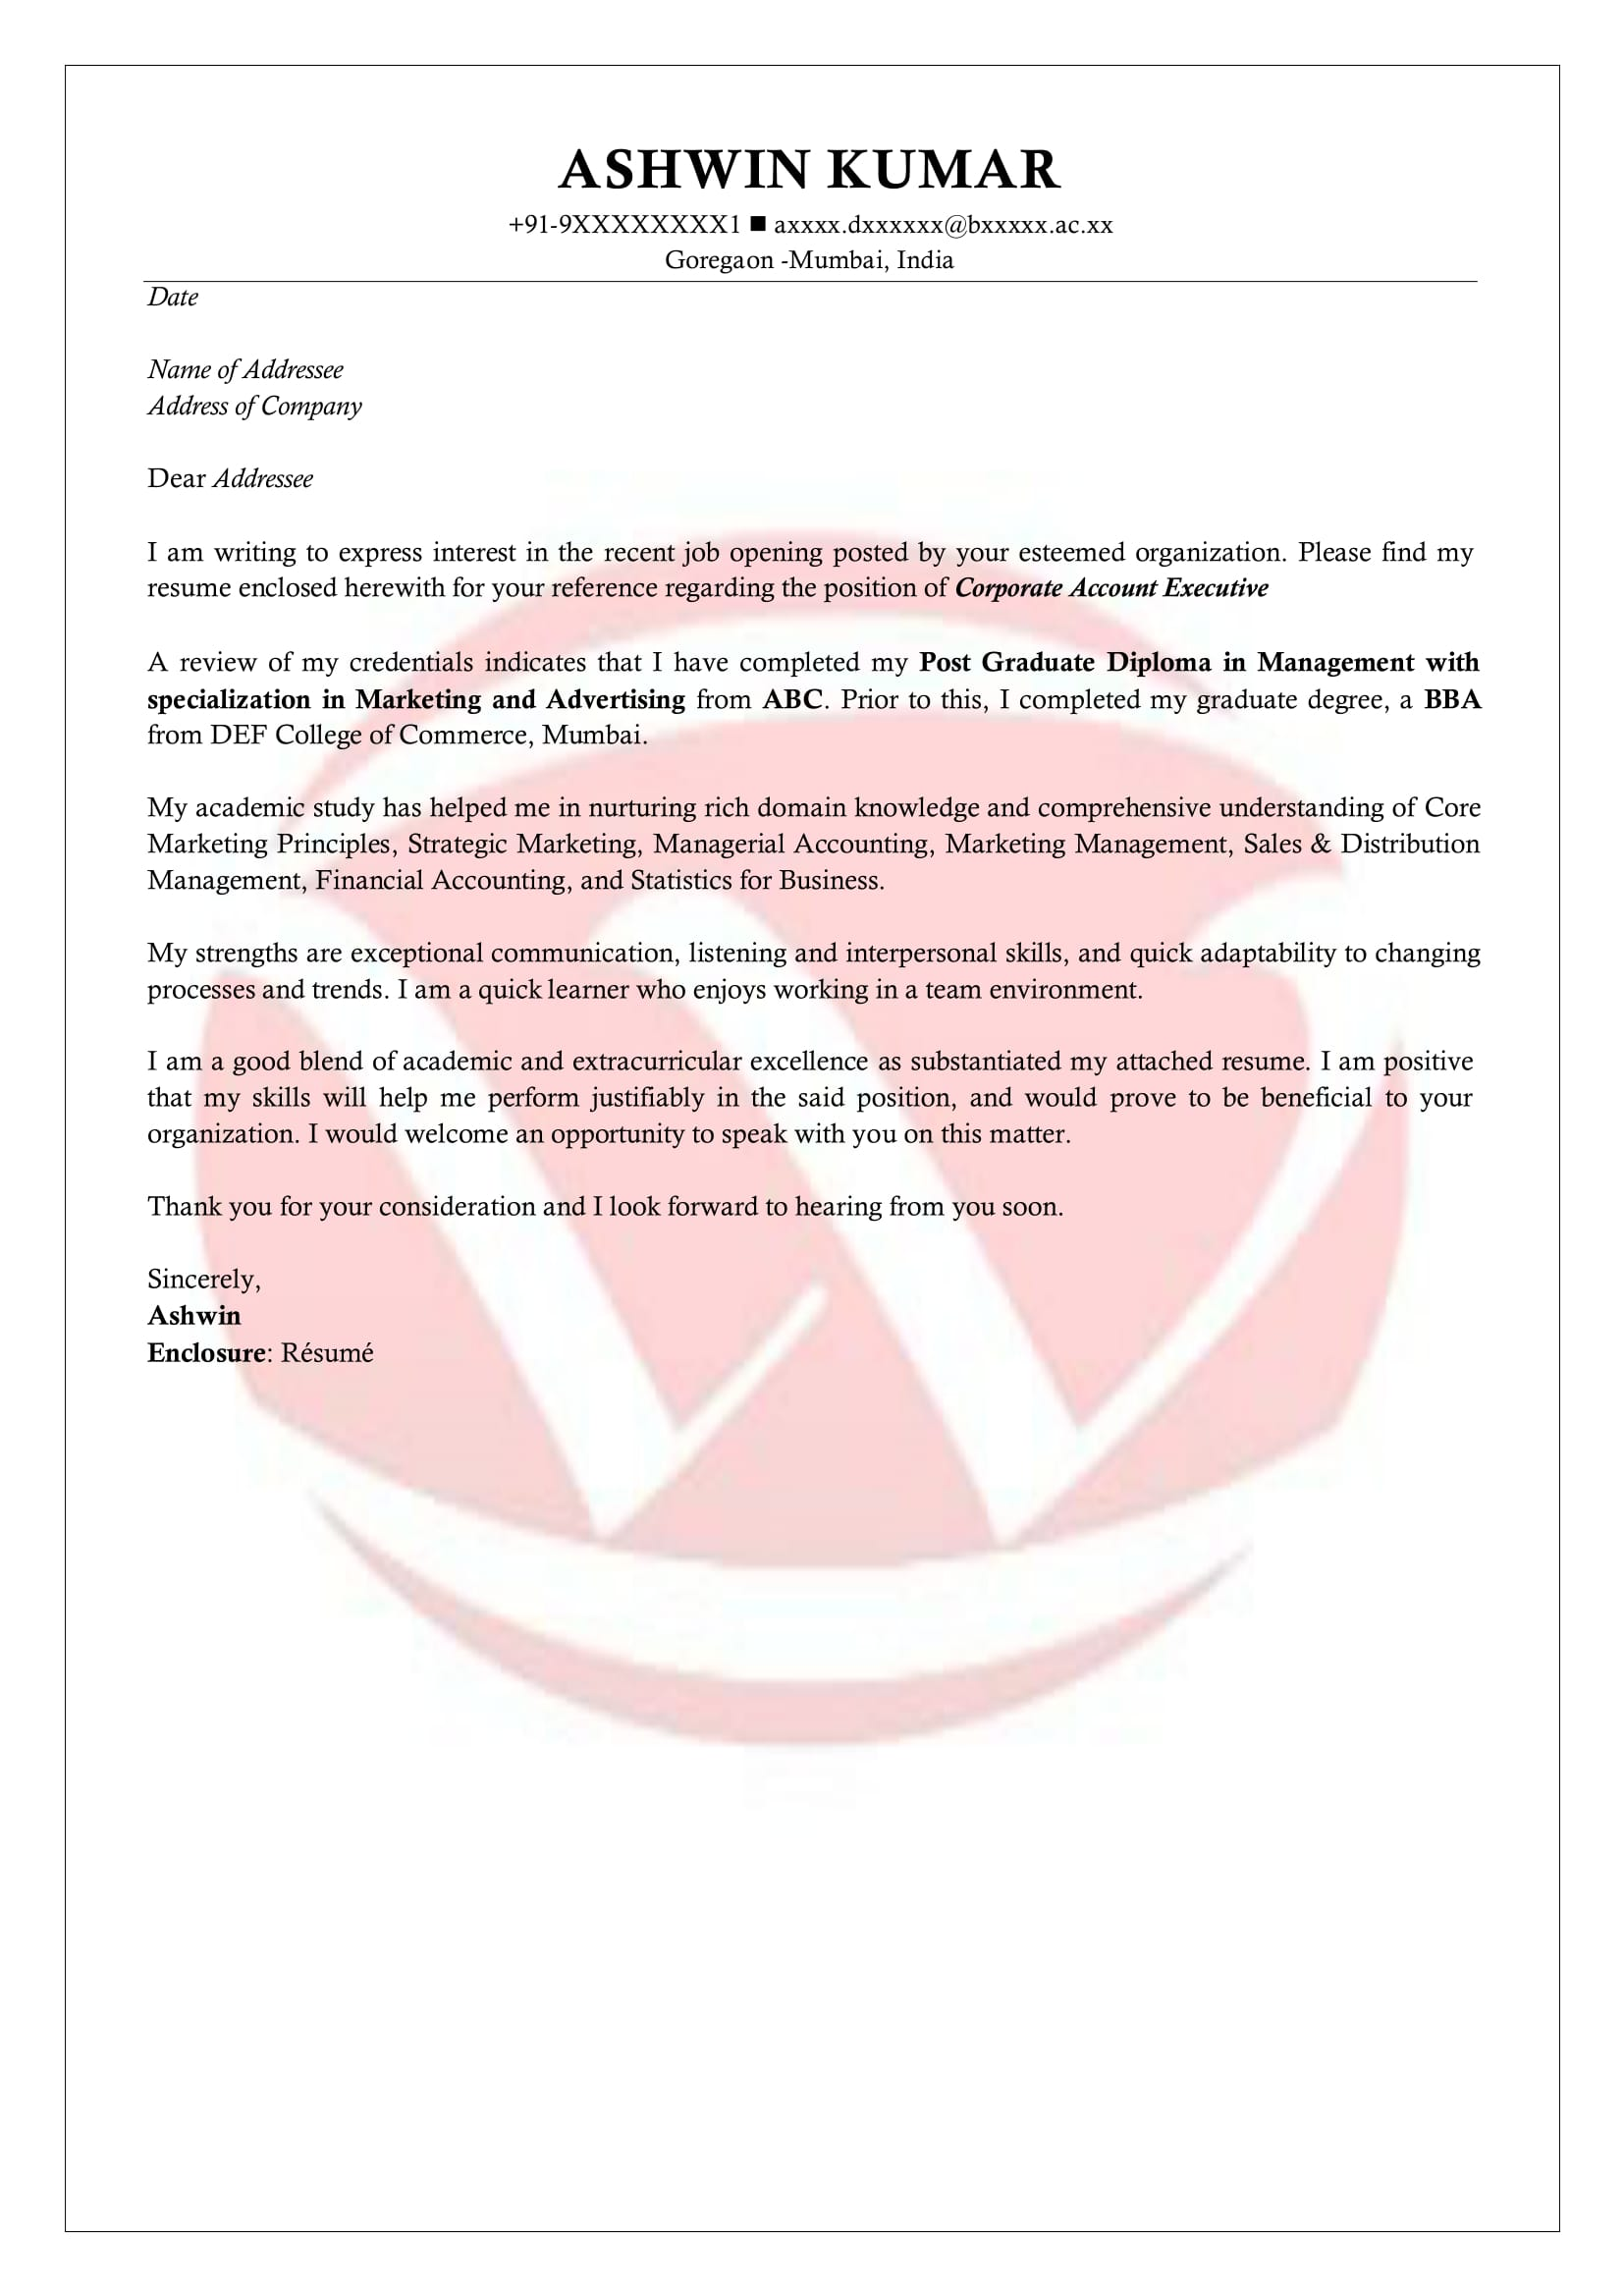 Freshers Sample Cover Letter Format Download Cover Letter Format - Format-for-cover-letter